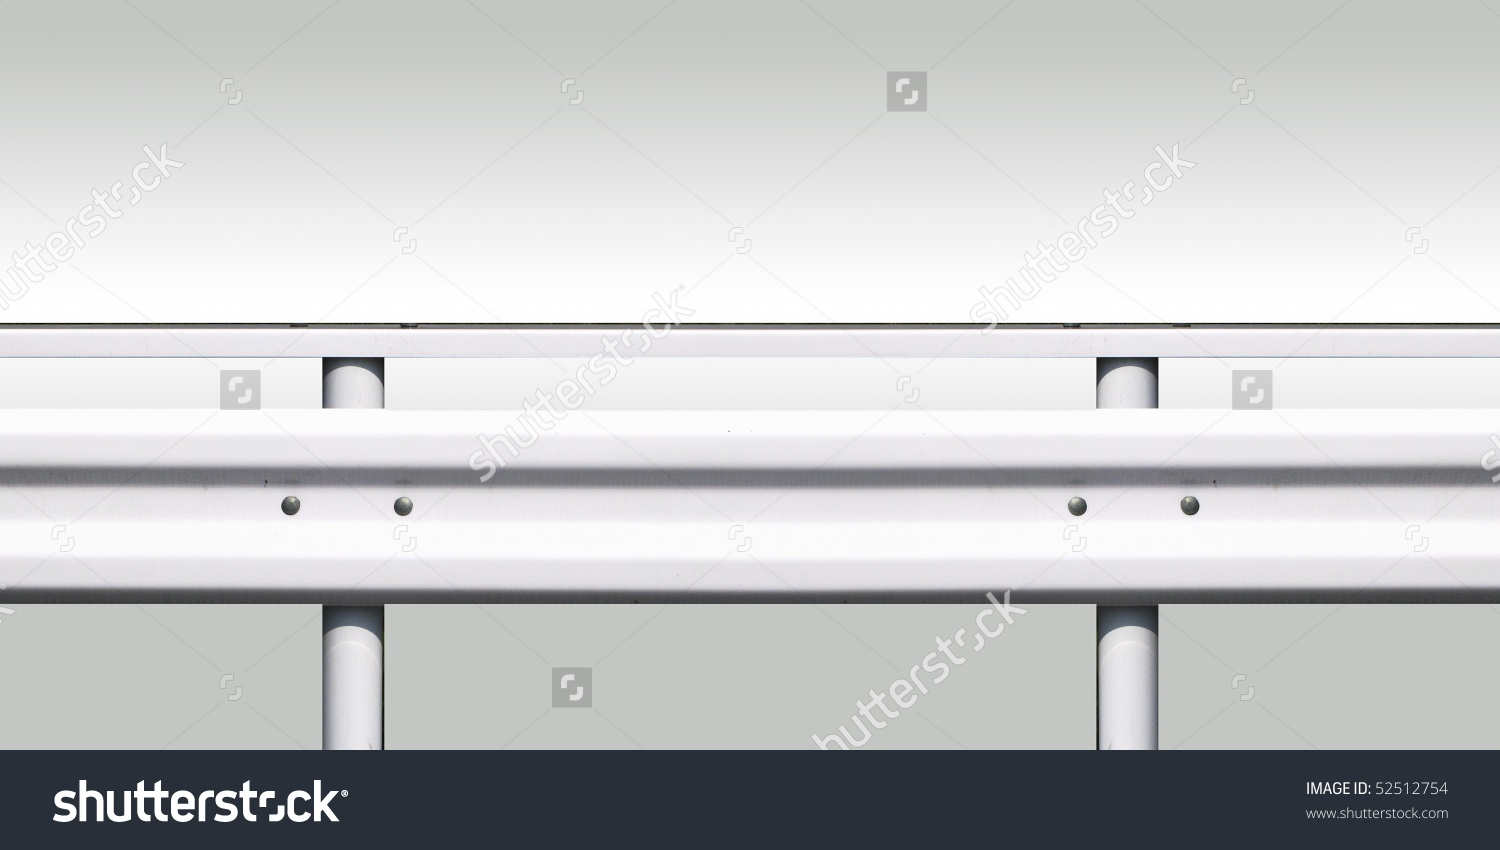 Material Image Guardrail Stock Illustration 52512754.